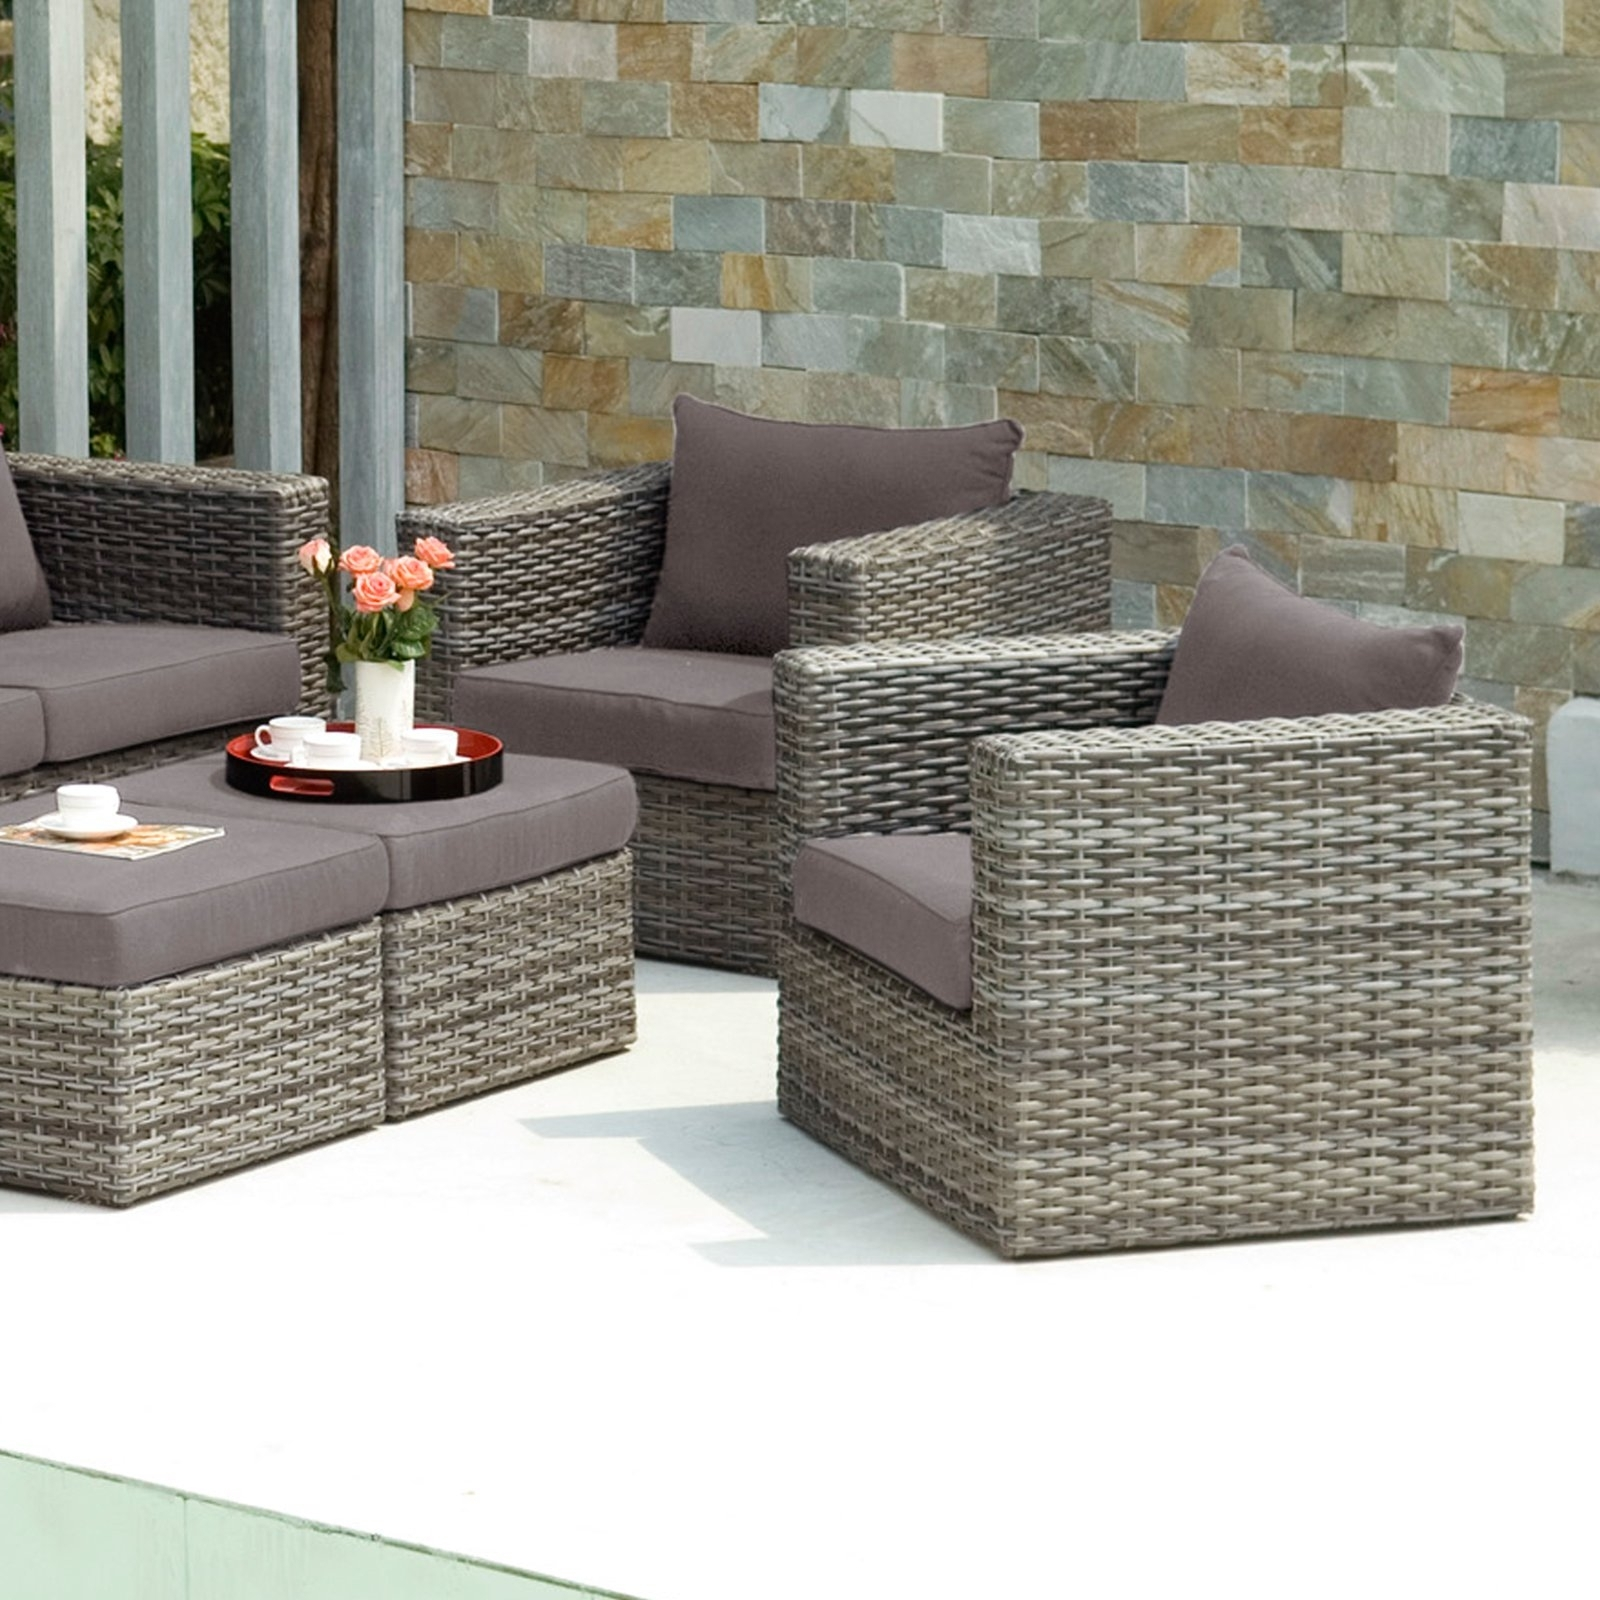 Fashionable Wicker Rocking Chairs And Ottoman With Regard To Wicker Outdoor Chairs Set With Ottoman Coffee Table Idea Of A (View 6 of 15)